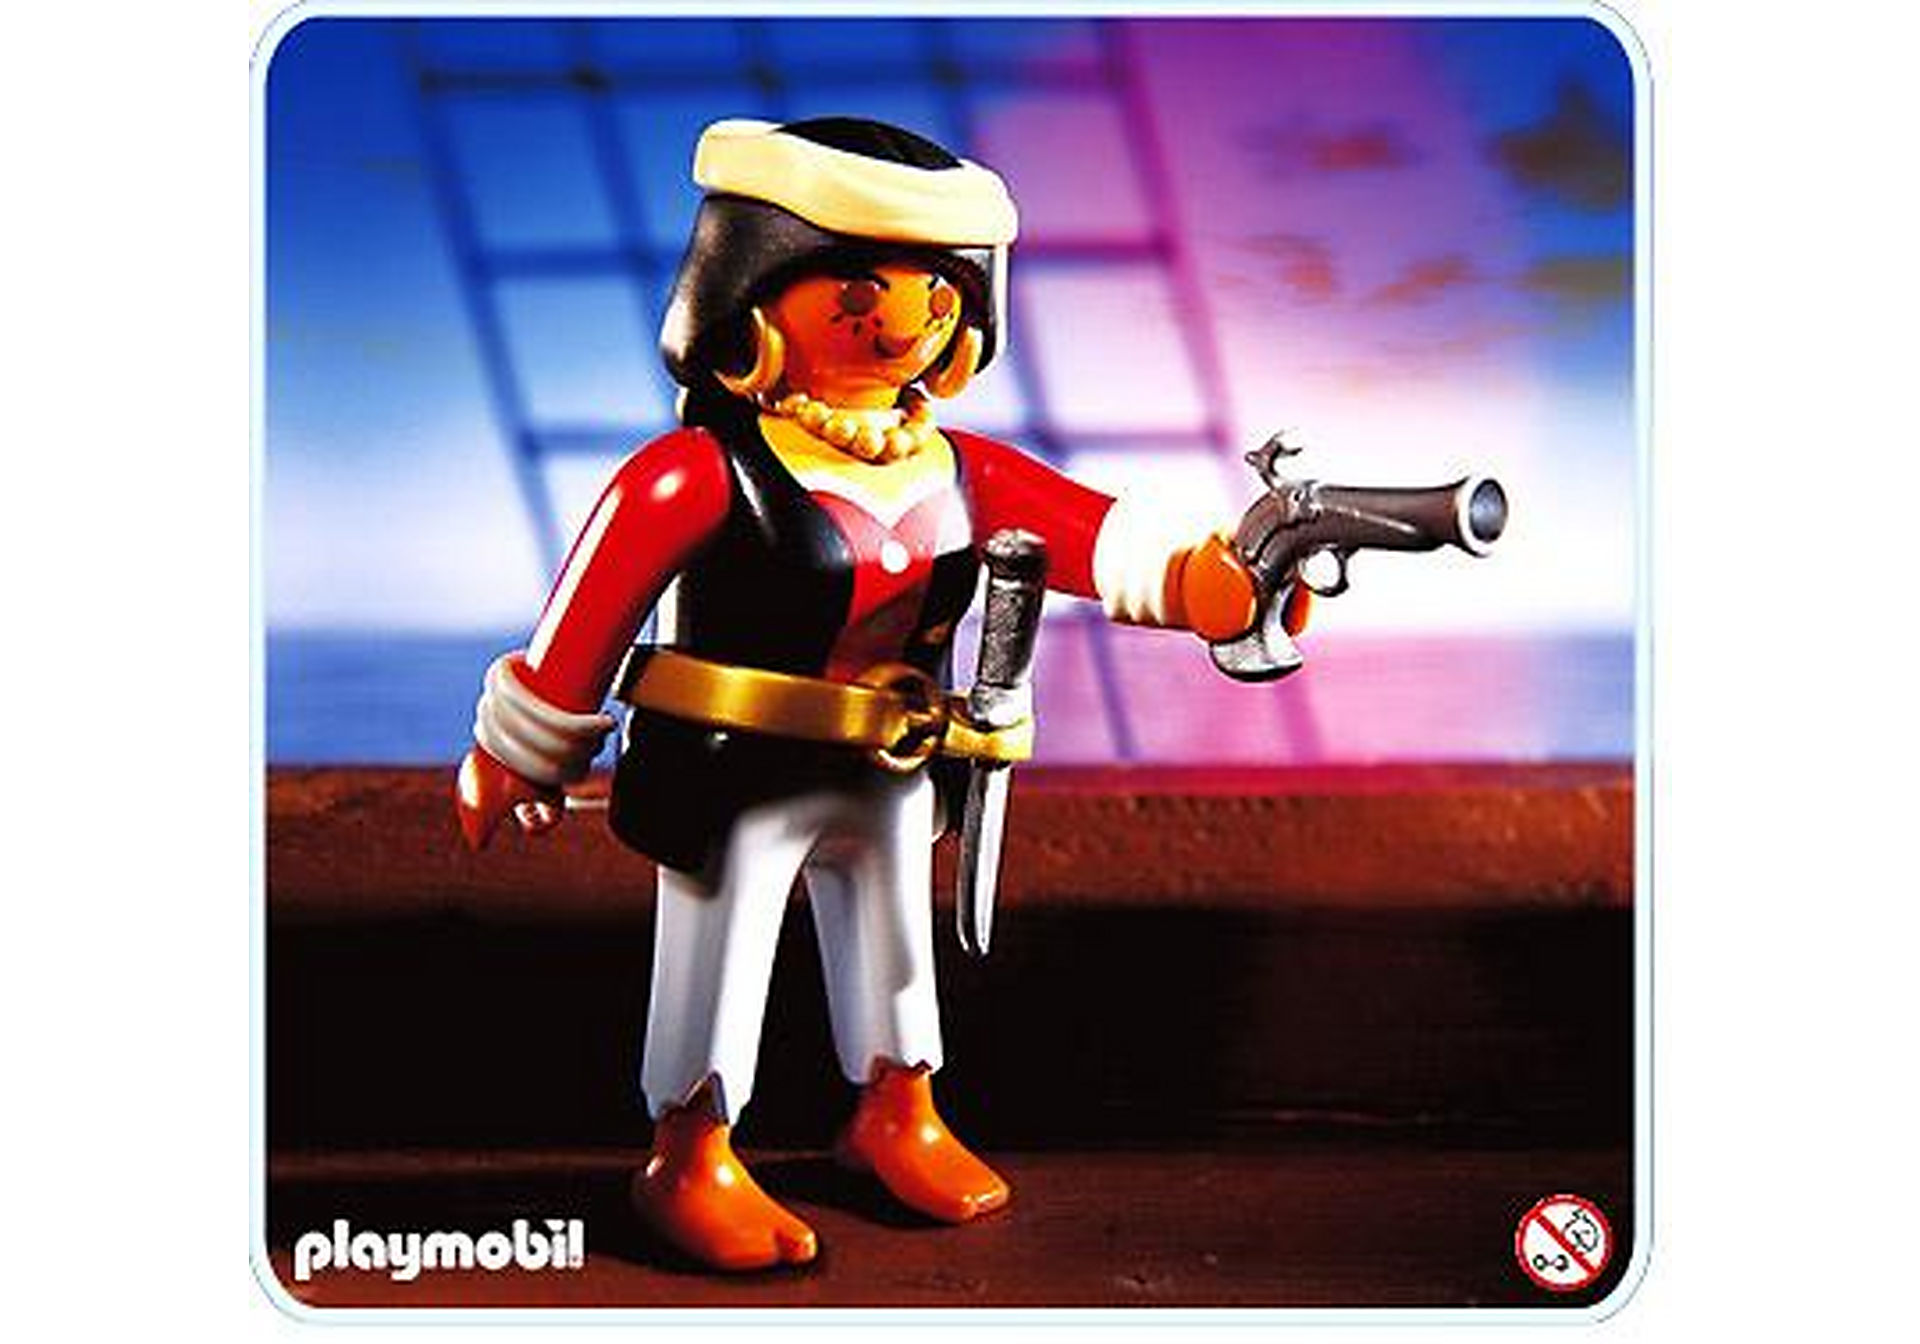 http://media.playmobil.com/i/playmobil/4614-A_product_detail/Piratenbraut